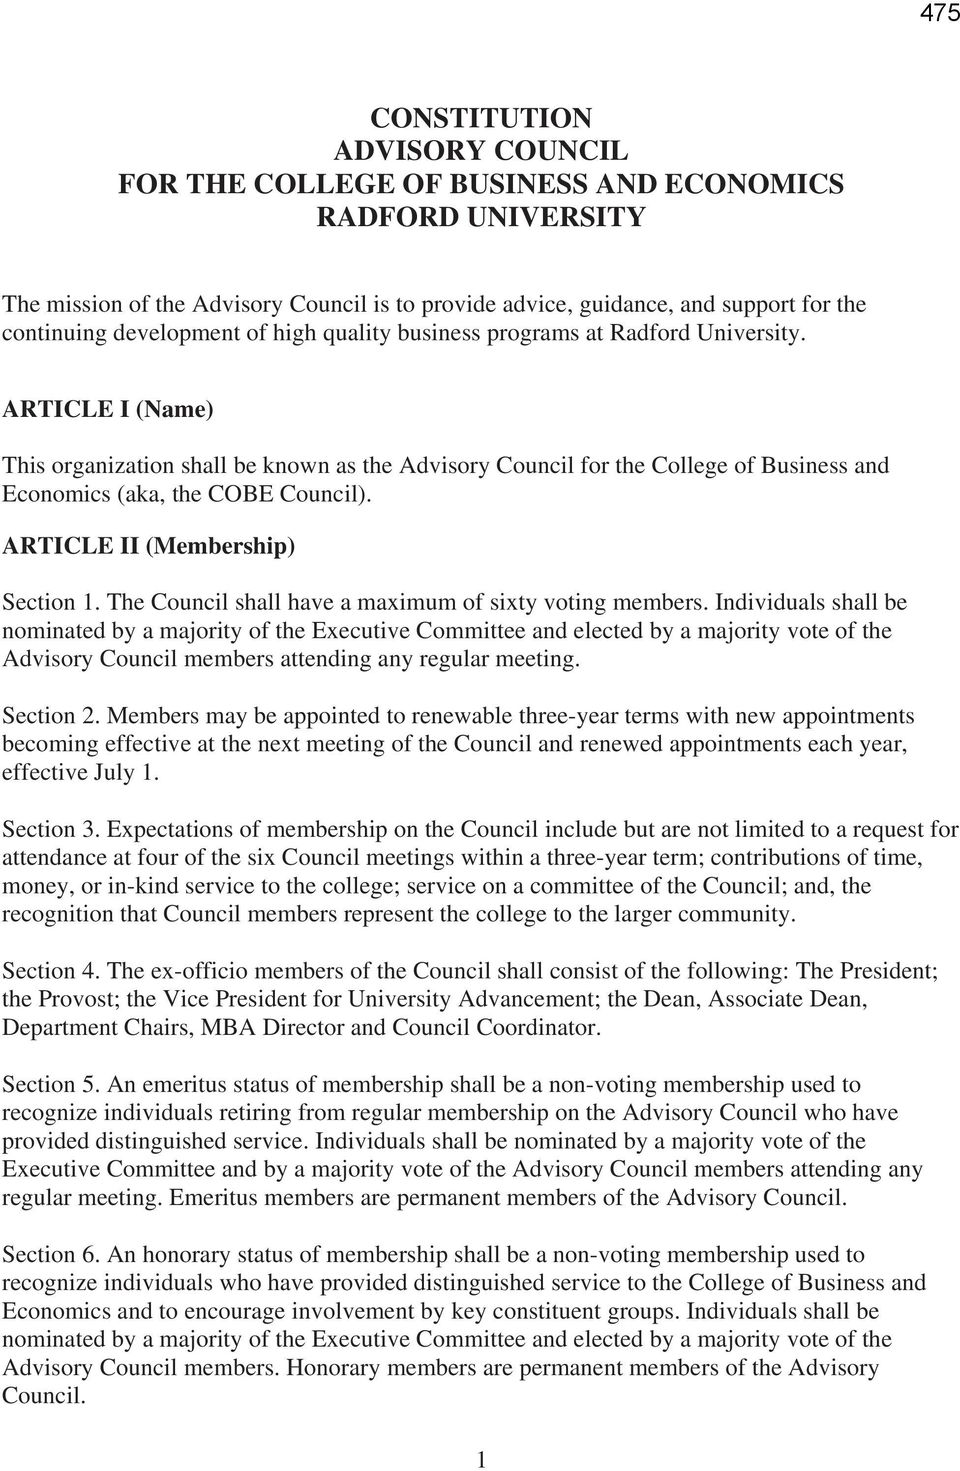 ARTICLE I (Name) This organization shall be known as the Advisory Council for the College of Business and Economics (aka, the COBE Council). ARTICLE II (Membership) Section 1.